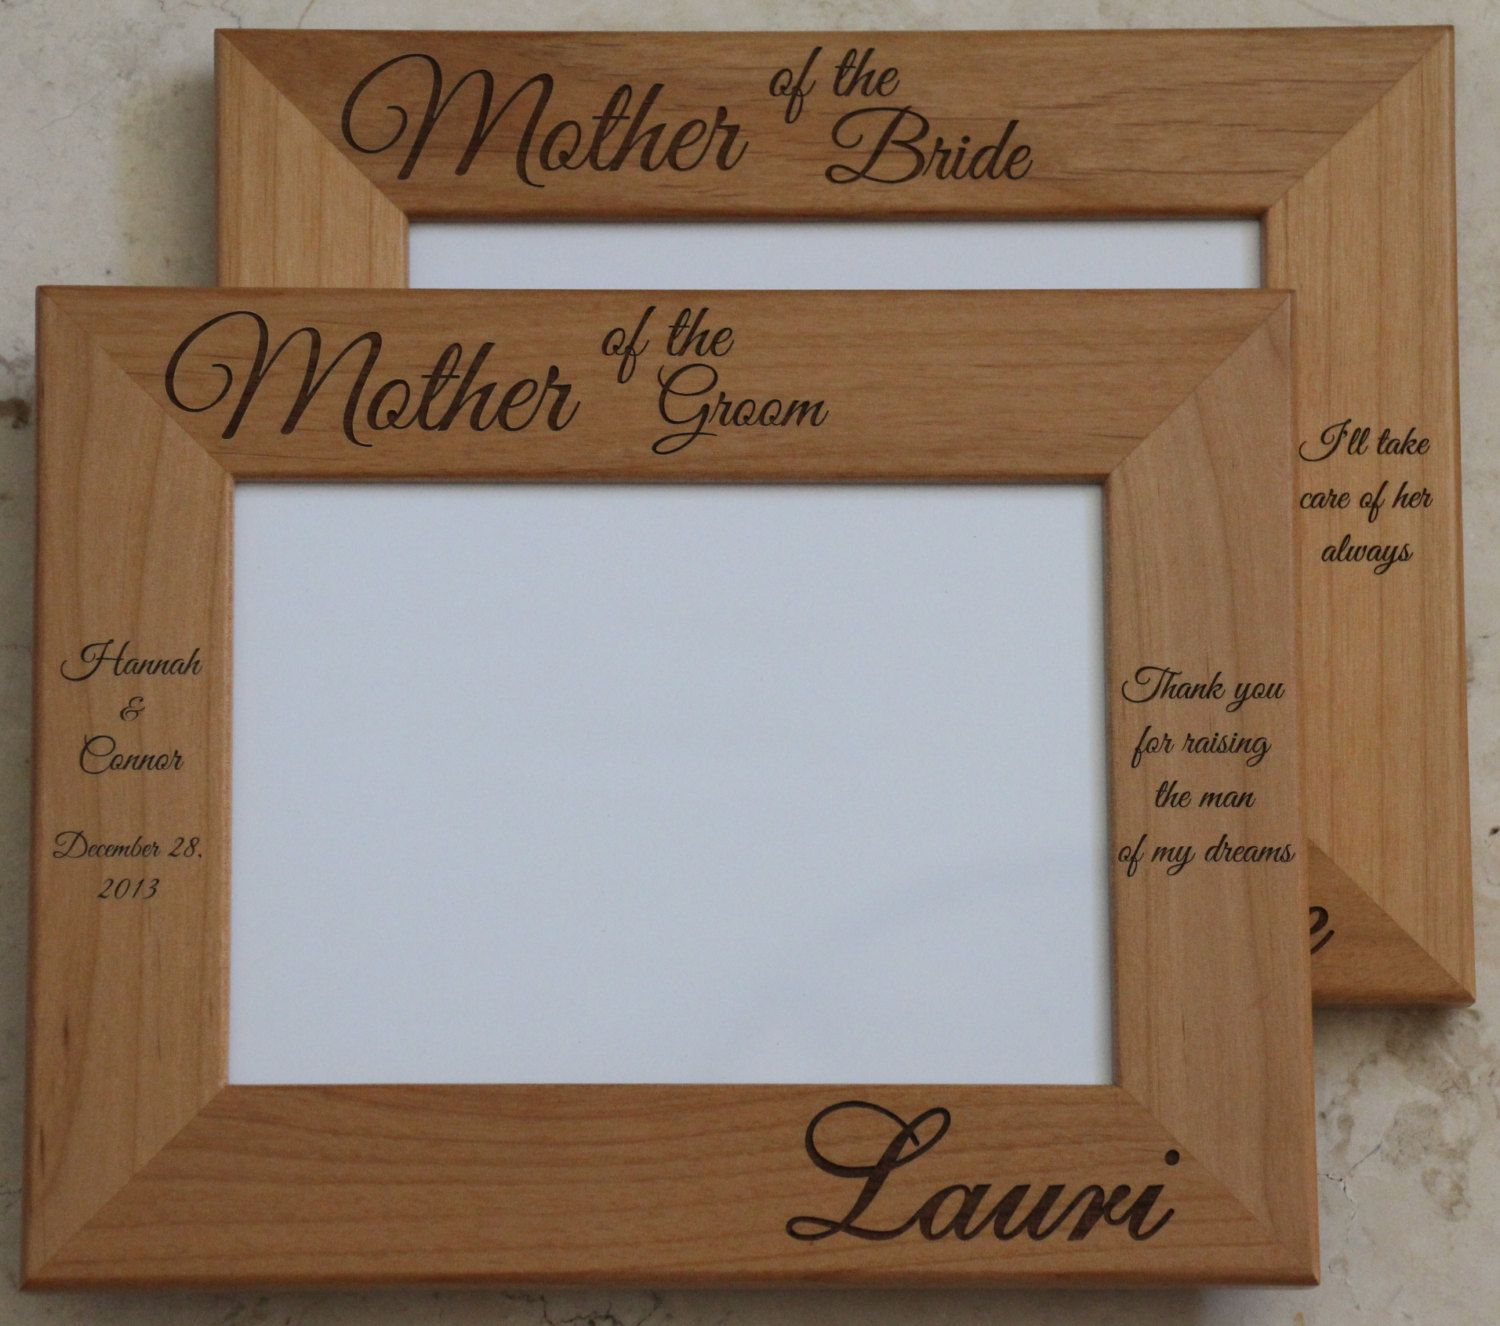 Mother of the Bride or Groom Frame | Groomsmen Gifts | Pinterest ...